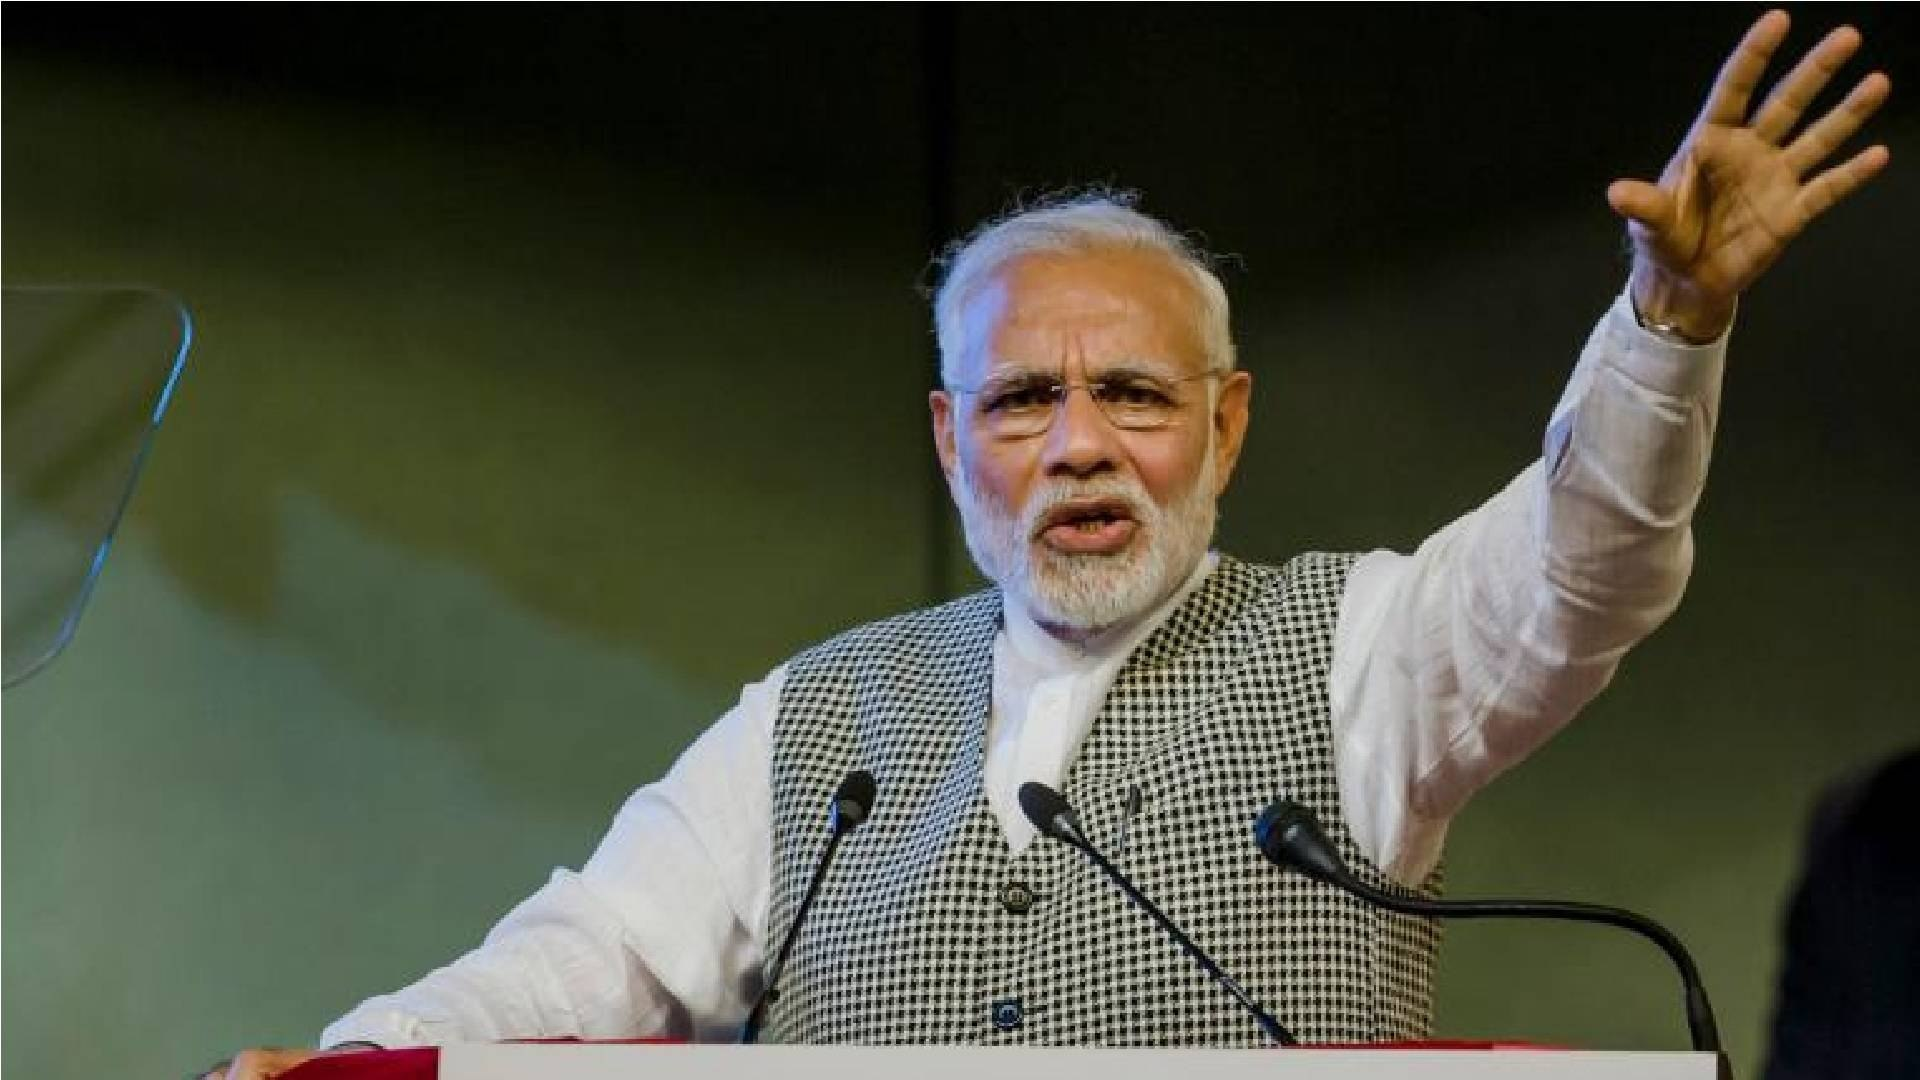 PM Modi gives 'Mantra of self-reliant India', VIDEO